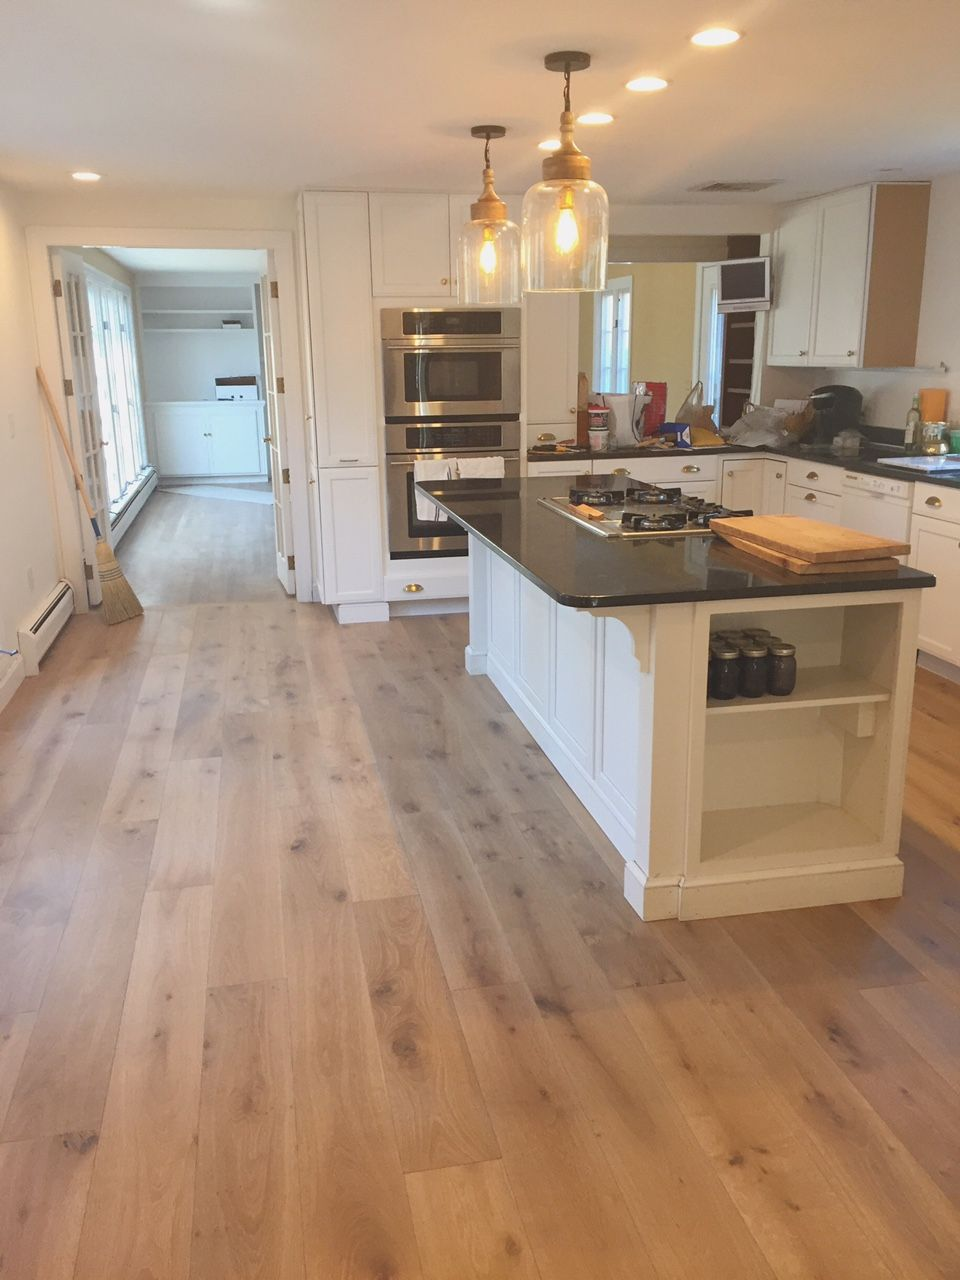 The search for the perfect engineered oak wide plank hardwoods for ...